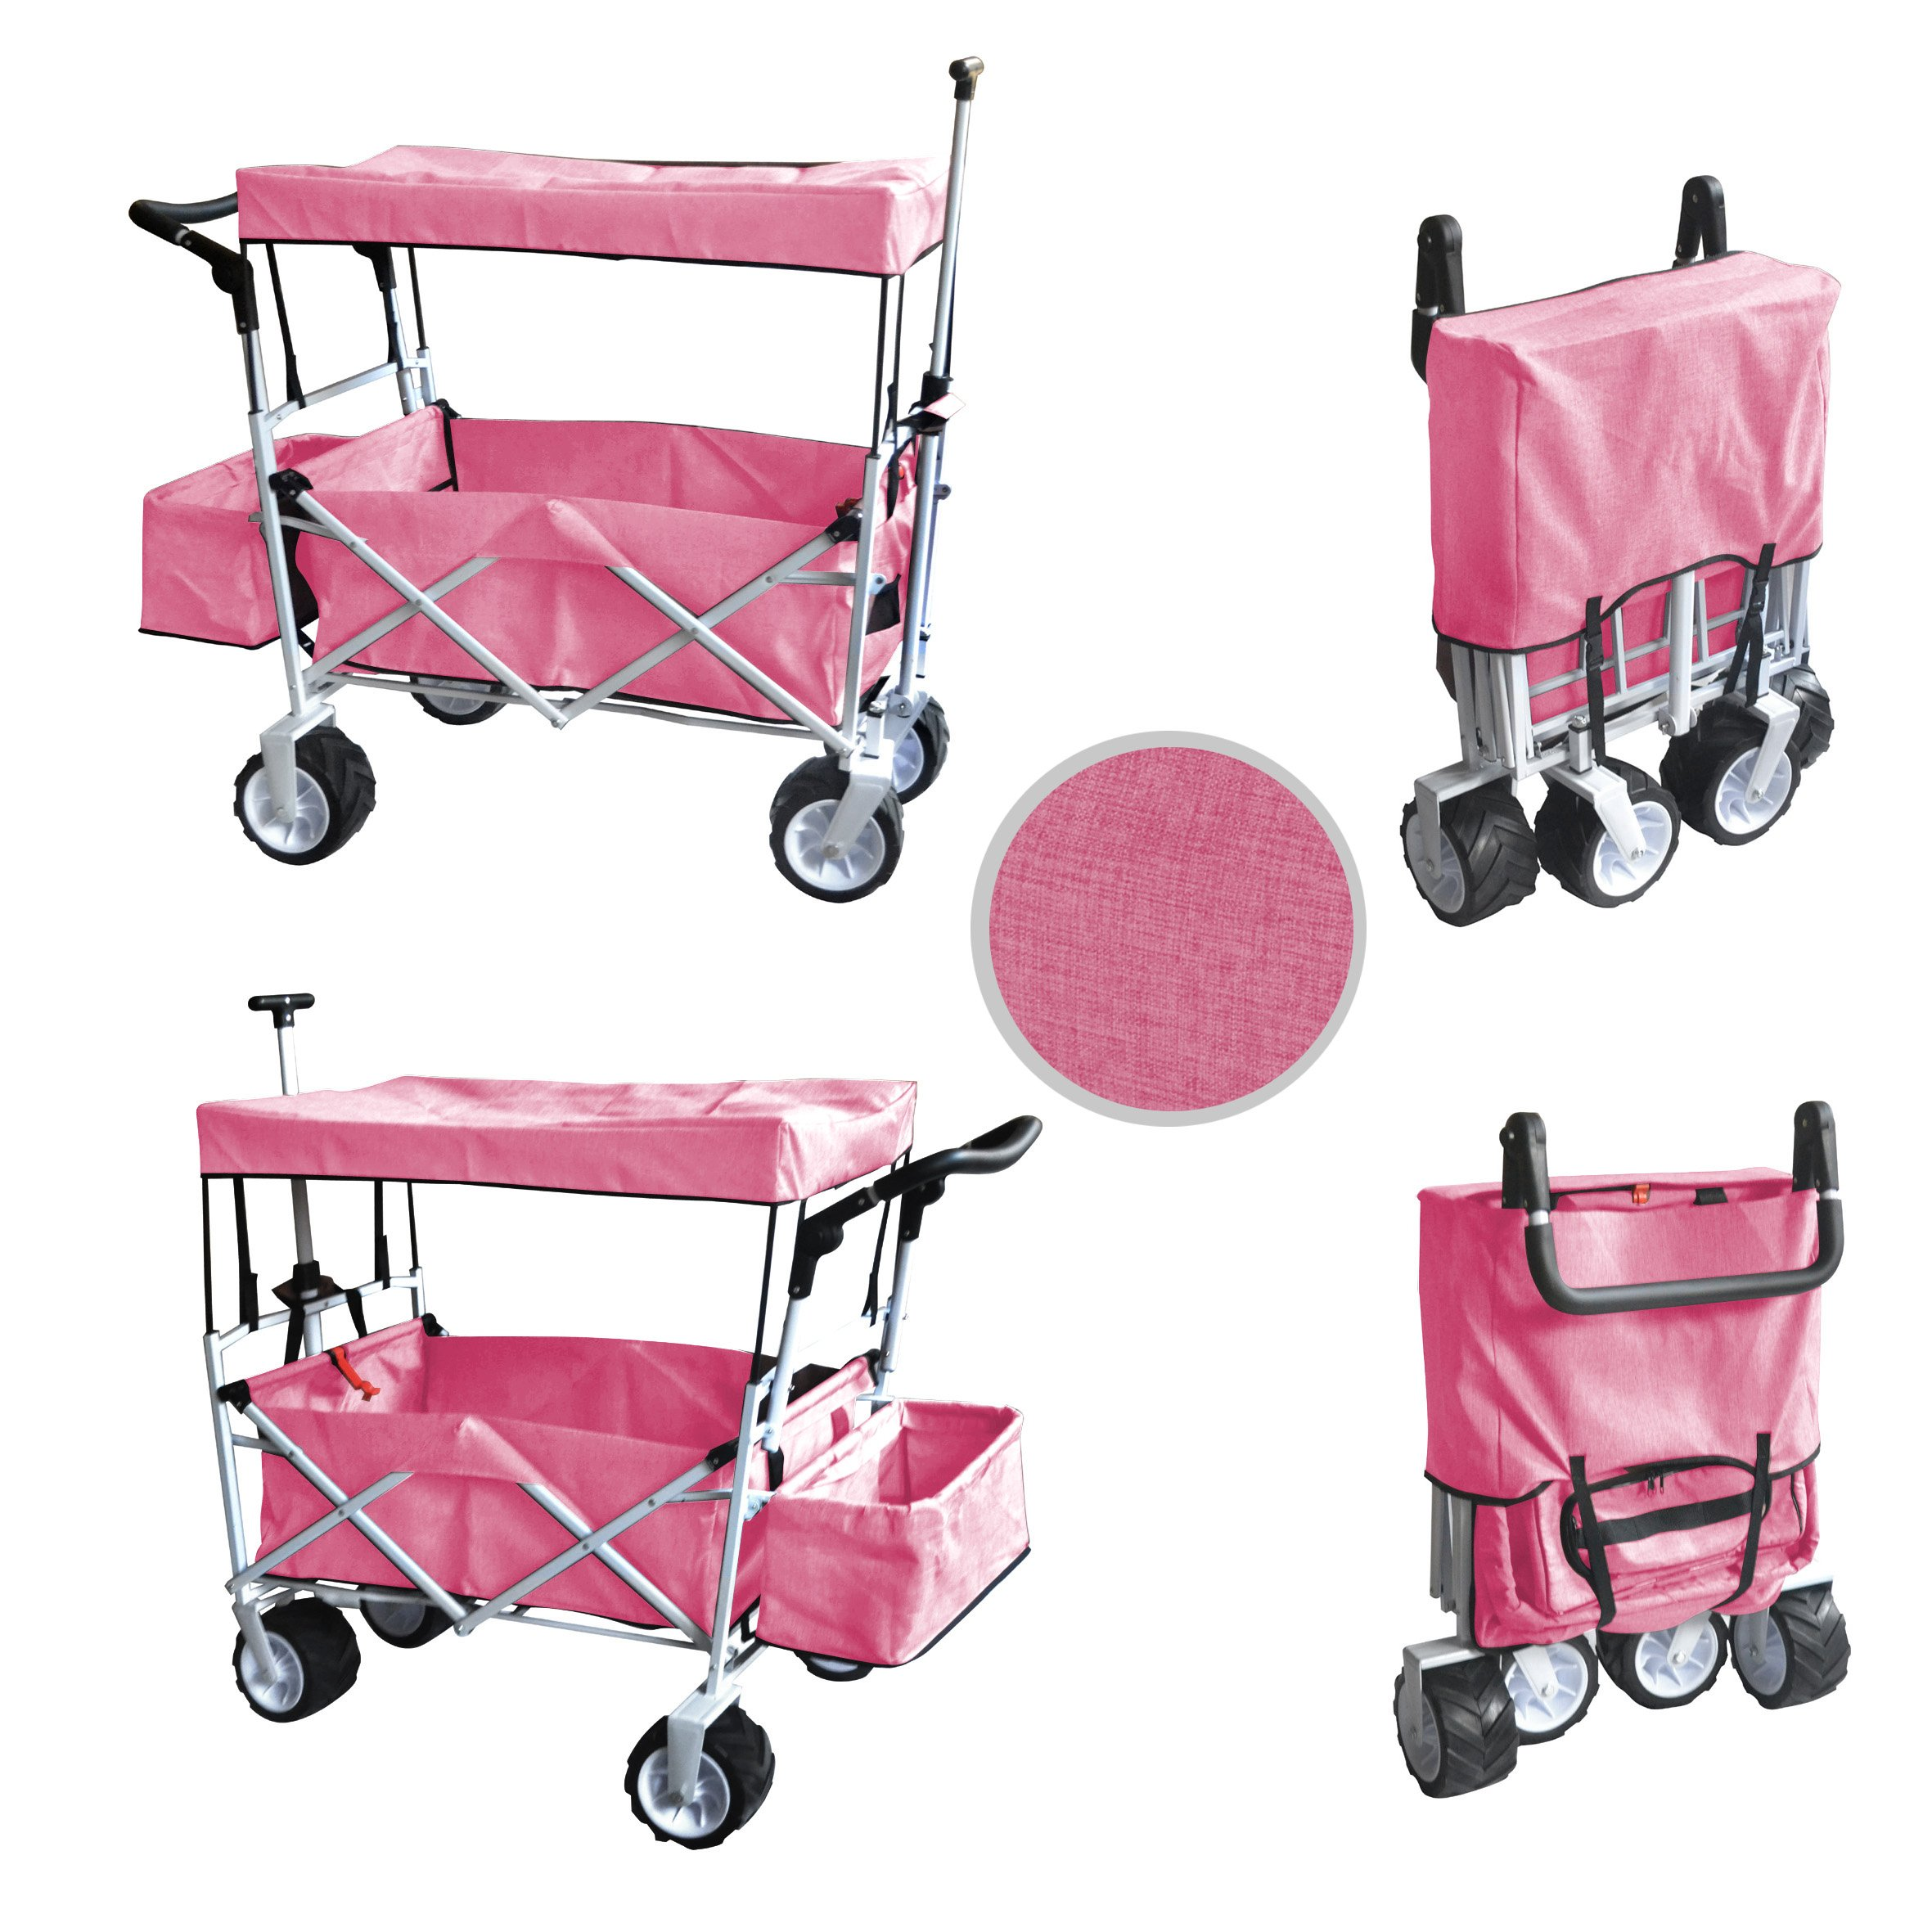 PINK JUMBO WHEEL PUSH AND PULL HANDLE FOLDING WAGON ALL PURPOSE GARDEN UTILITY BEACH SHOPPING TRAVEL CART OUTDOOR SPORT COLLAPSIBLE WITH CANOPY COVER FREE ICE COOLER BAG - EASY SETUP NO TOOL NECESSARY by Wagon-Buddy